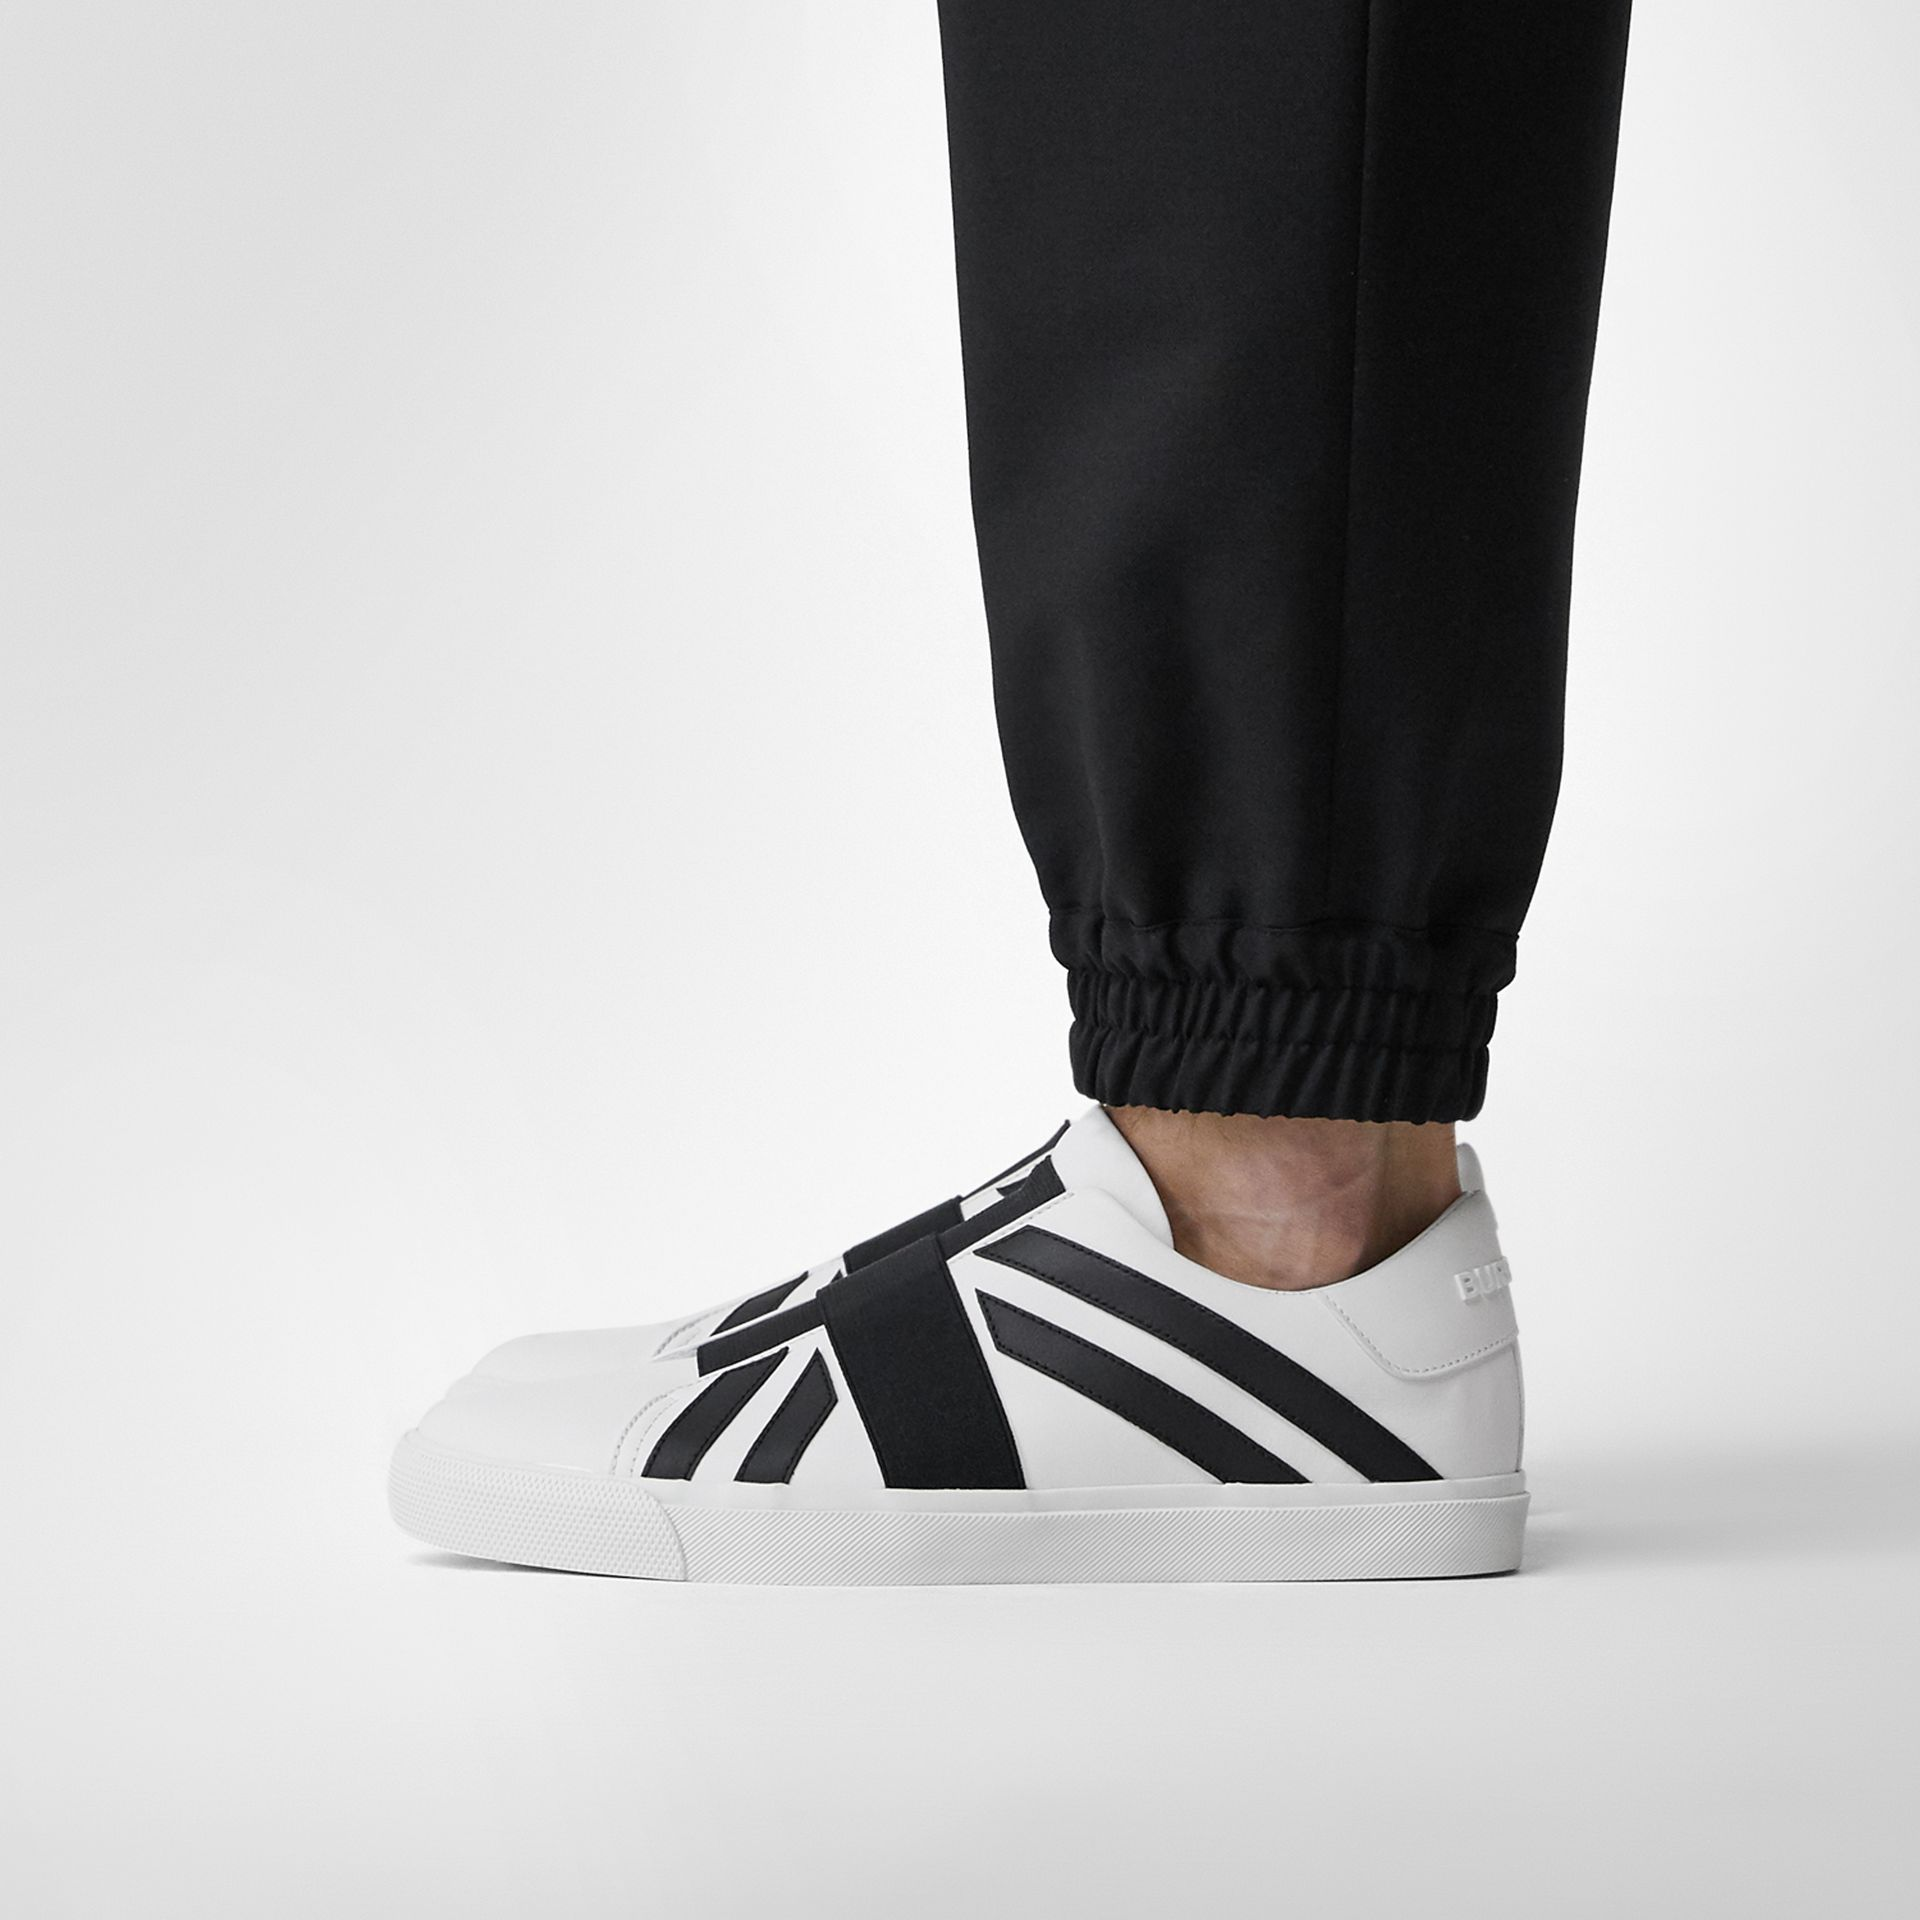 Union Jack Motif Slip-on Sneakers in White - Men | Burberry - gallery image 2